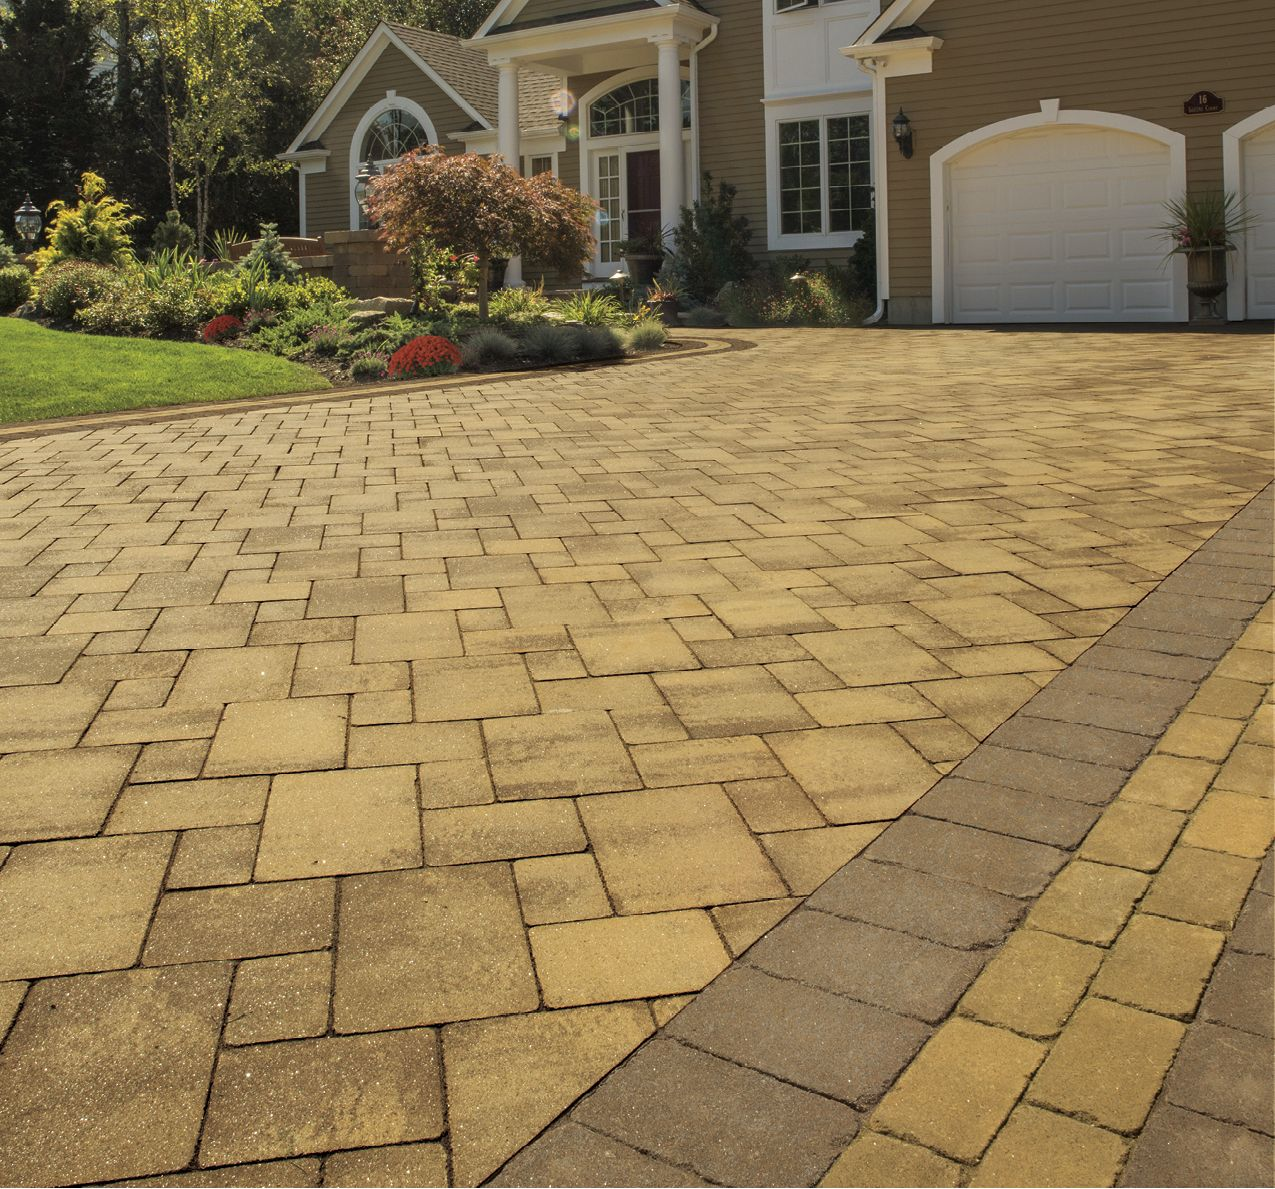 Cambridge pavingstones wall systems color options - Imagine Driving Up Your Street And Your Driveway Looked Like This This Entryway Features Cambridge Pavingstones With Armortec